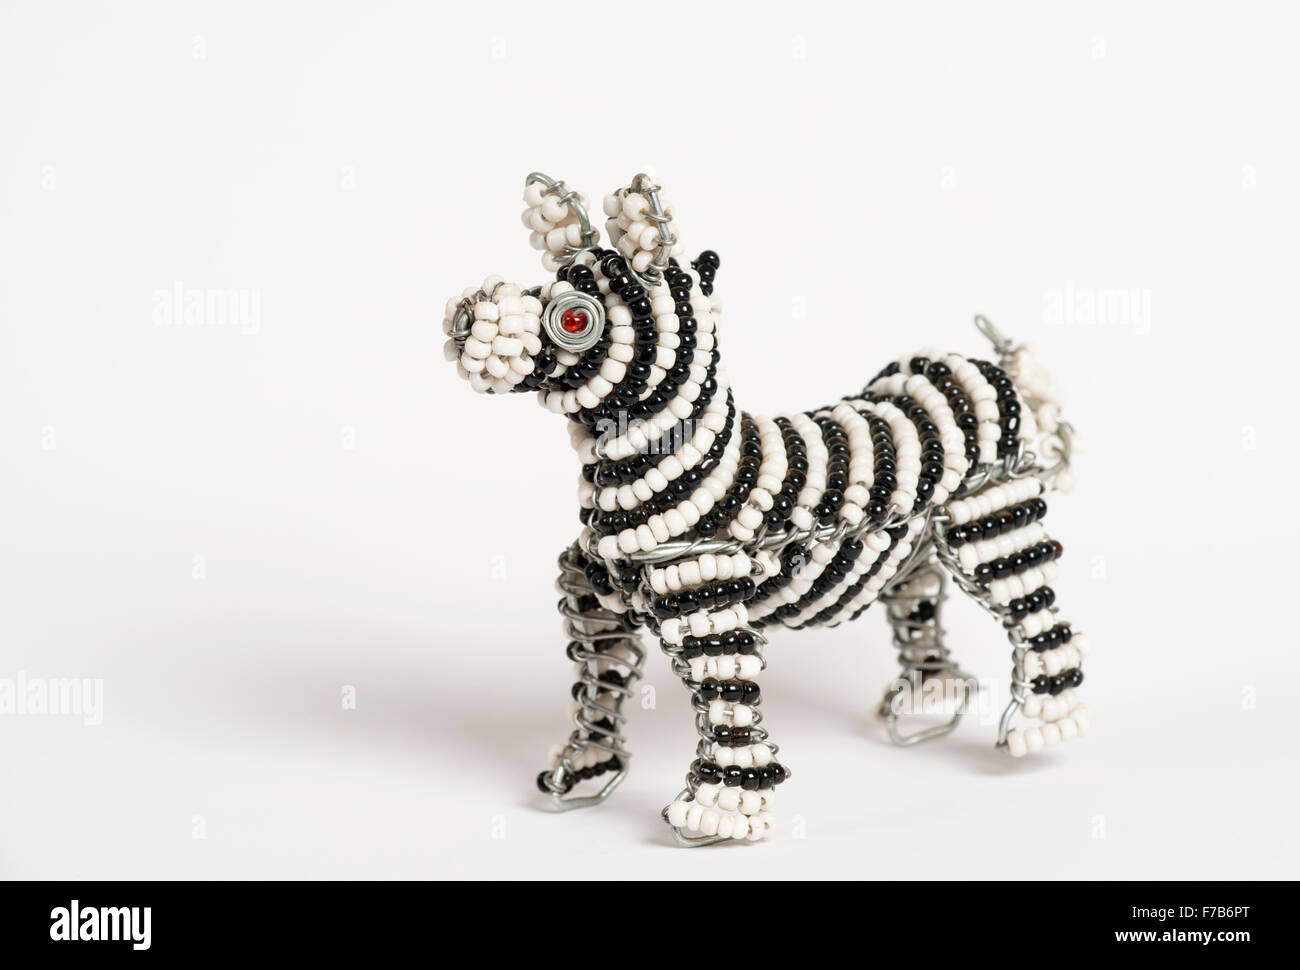 Beaded Wire Animal Stock Photos & Beaded Wire Animal Stock Images ...